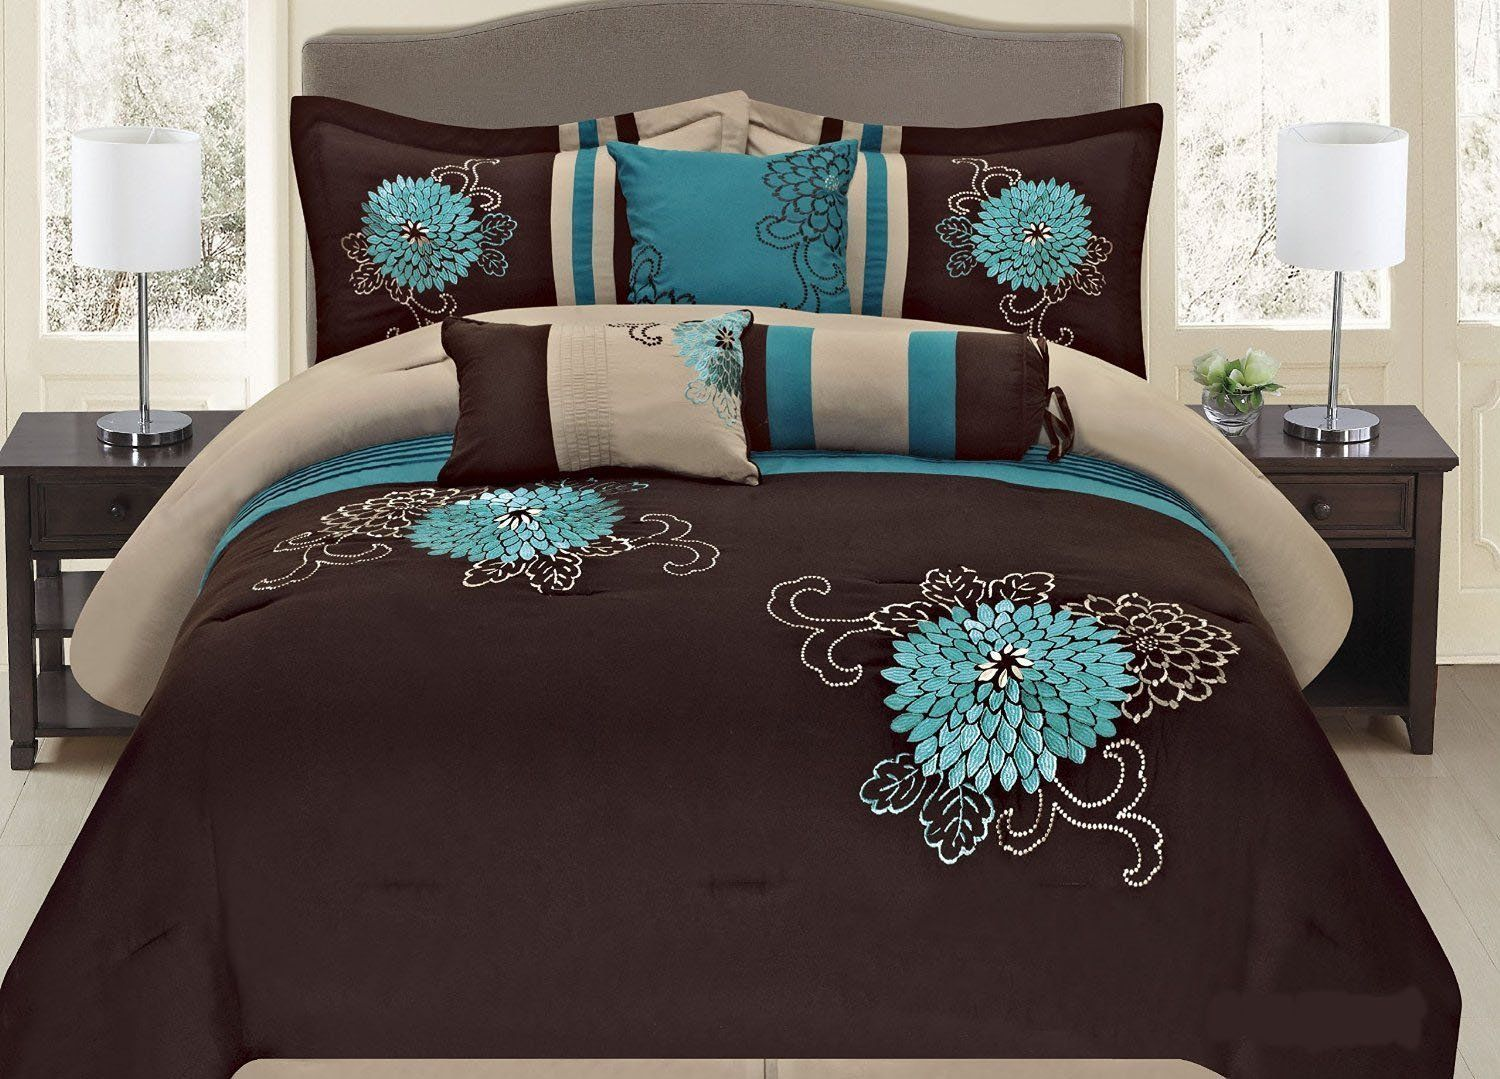 Fancy Collection 7 Pc Embroidery Bedding Brown Turquoise Comforter Set King